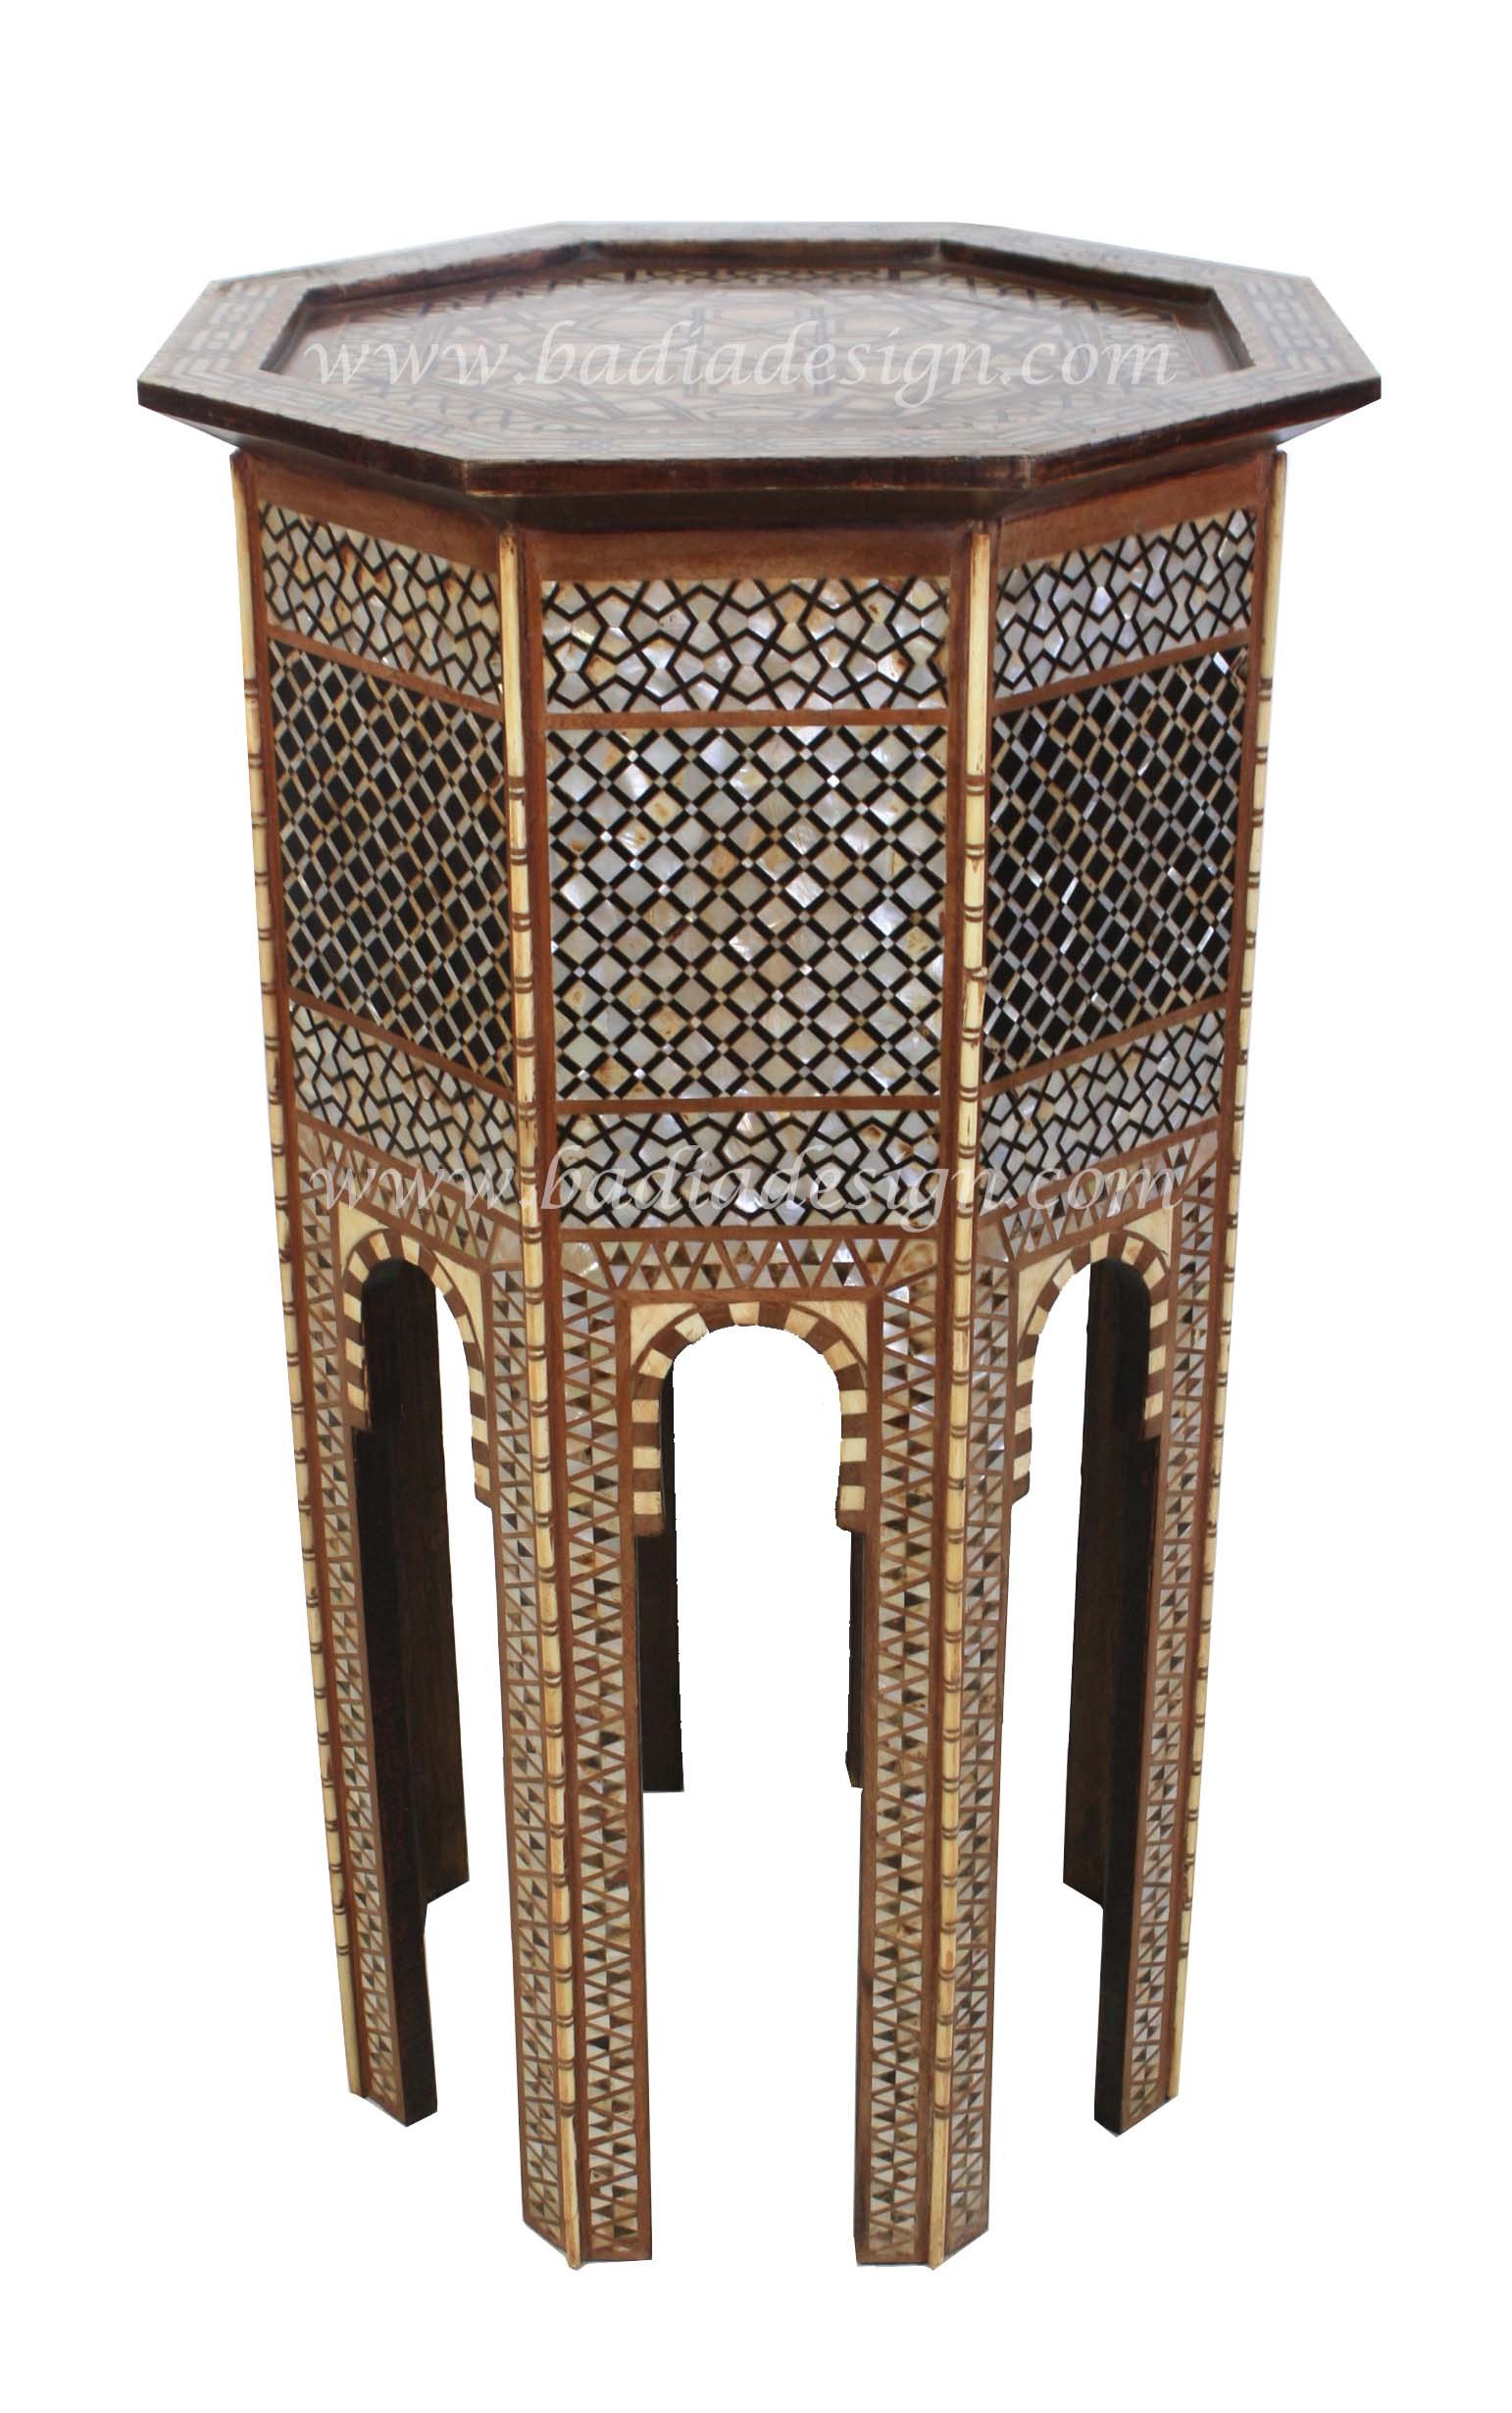 syrian-design-furniture-new-york-mop-st064-1.jpg